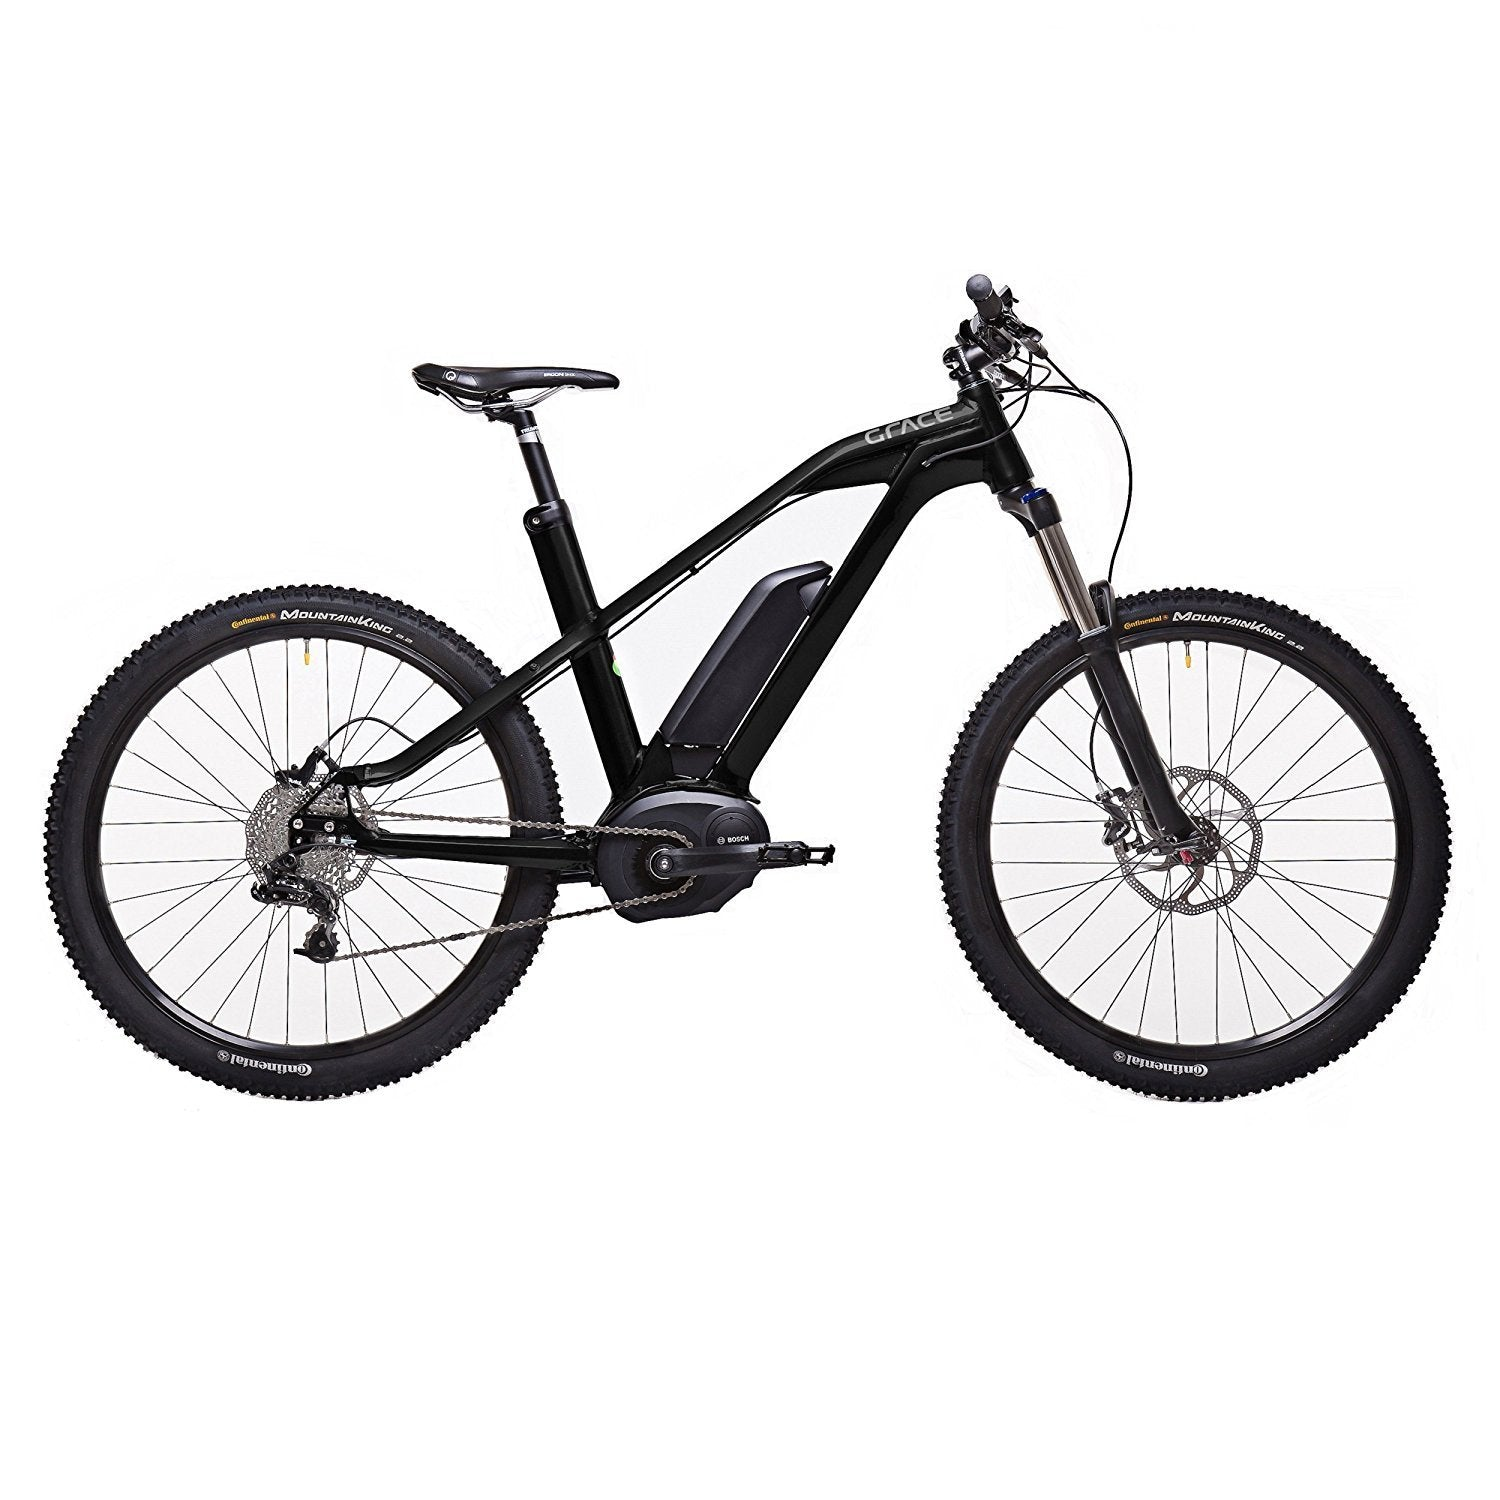 Grace MX II Trail 350w Bosch Electric Mountain Bike - Electric Bike 16.5 Inch Ridetique.com